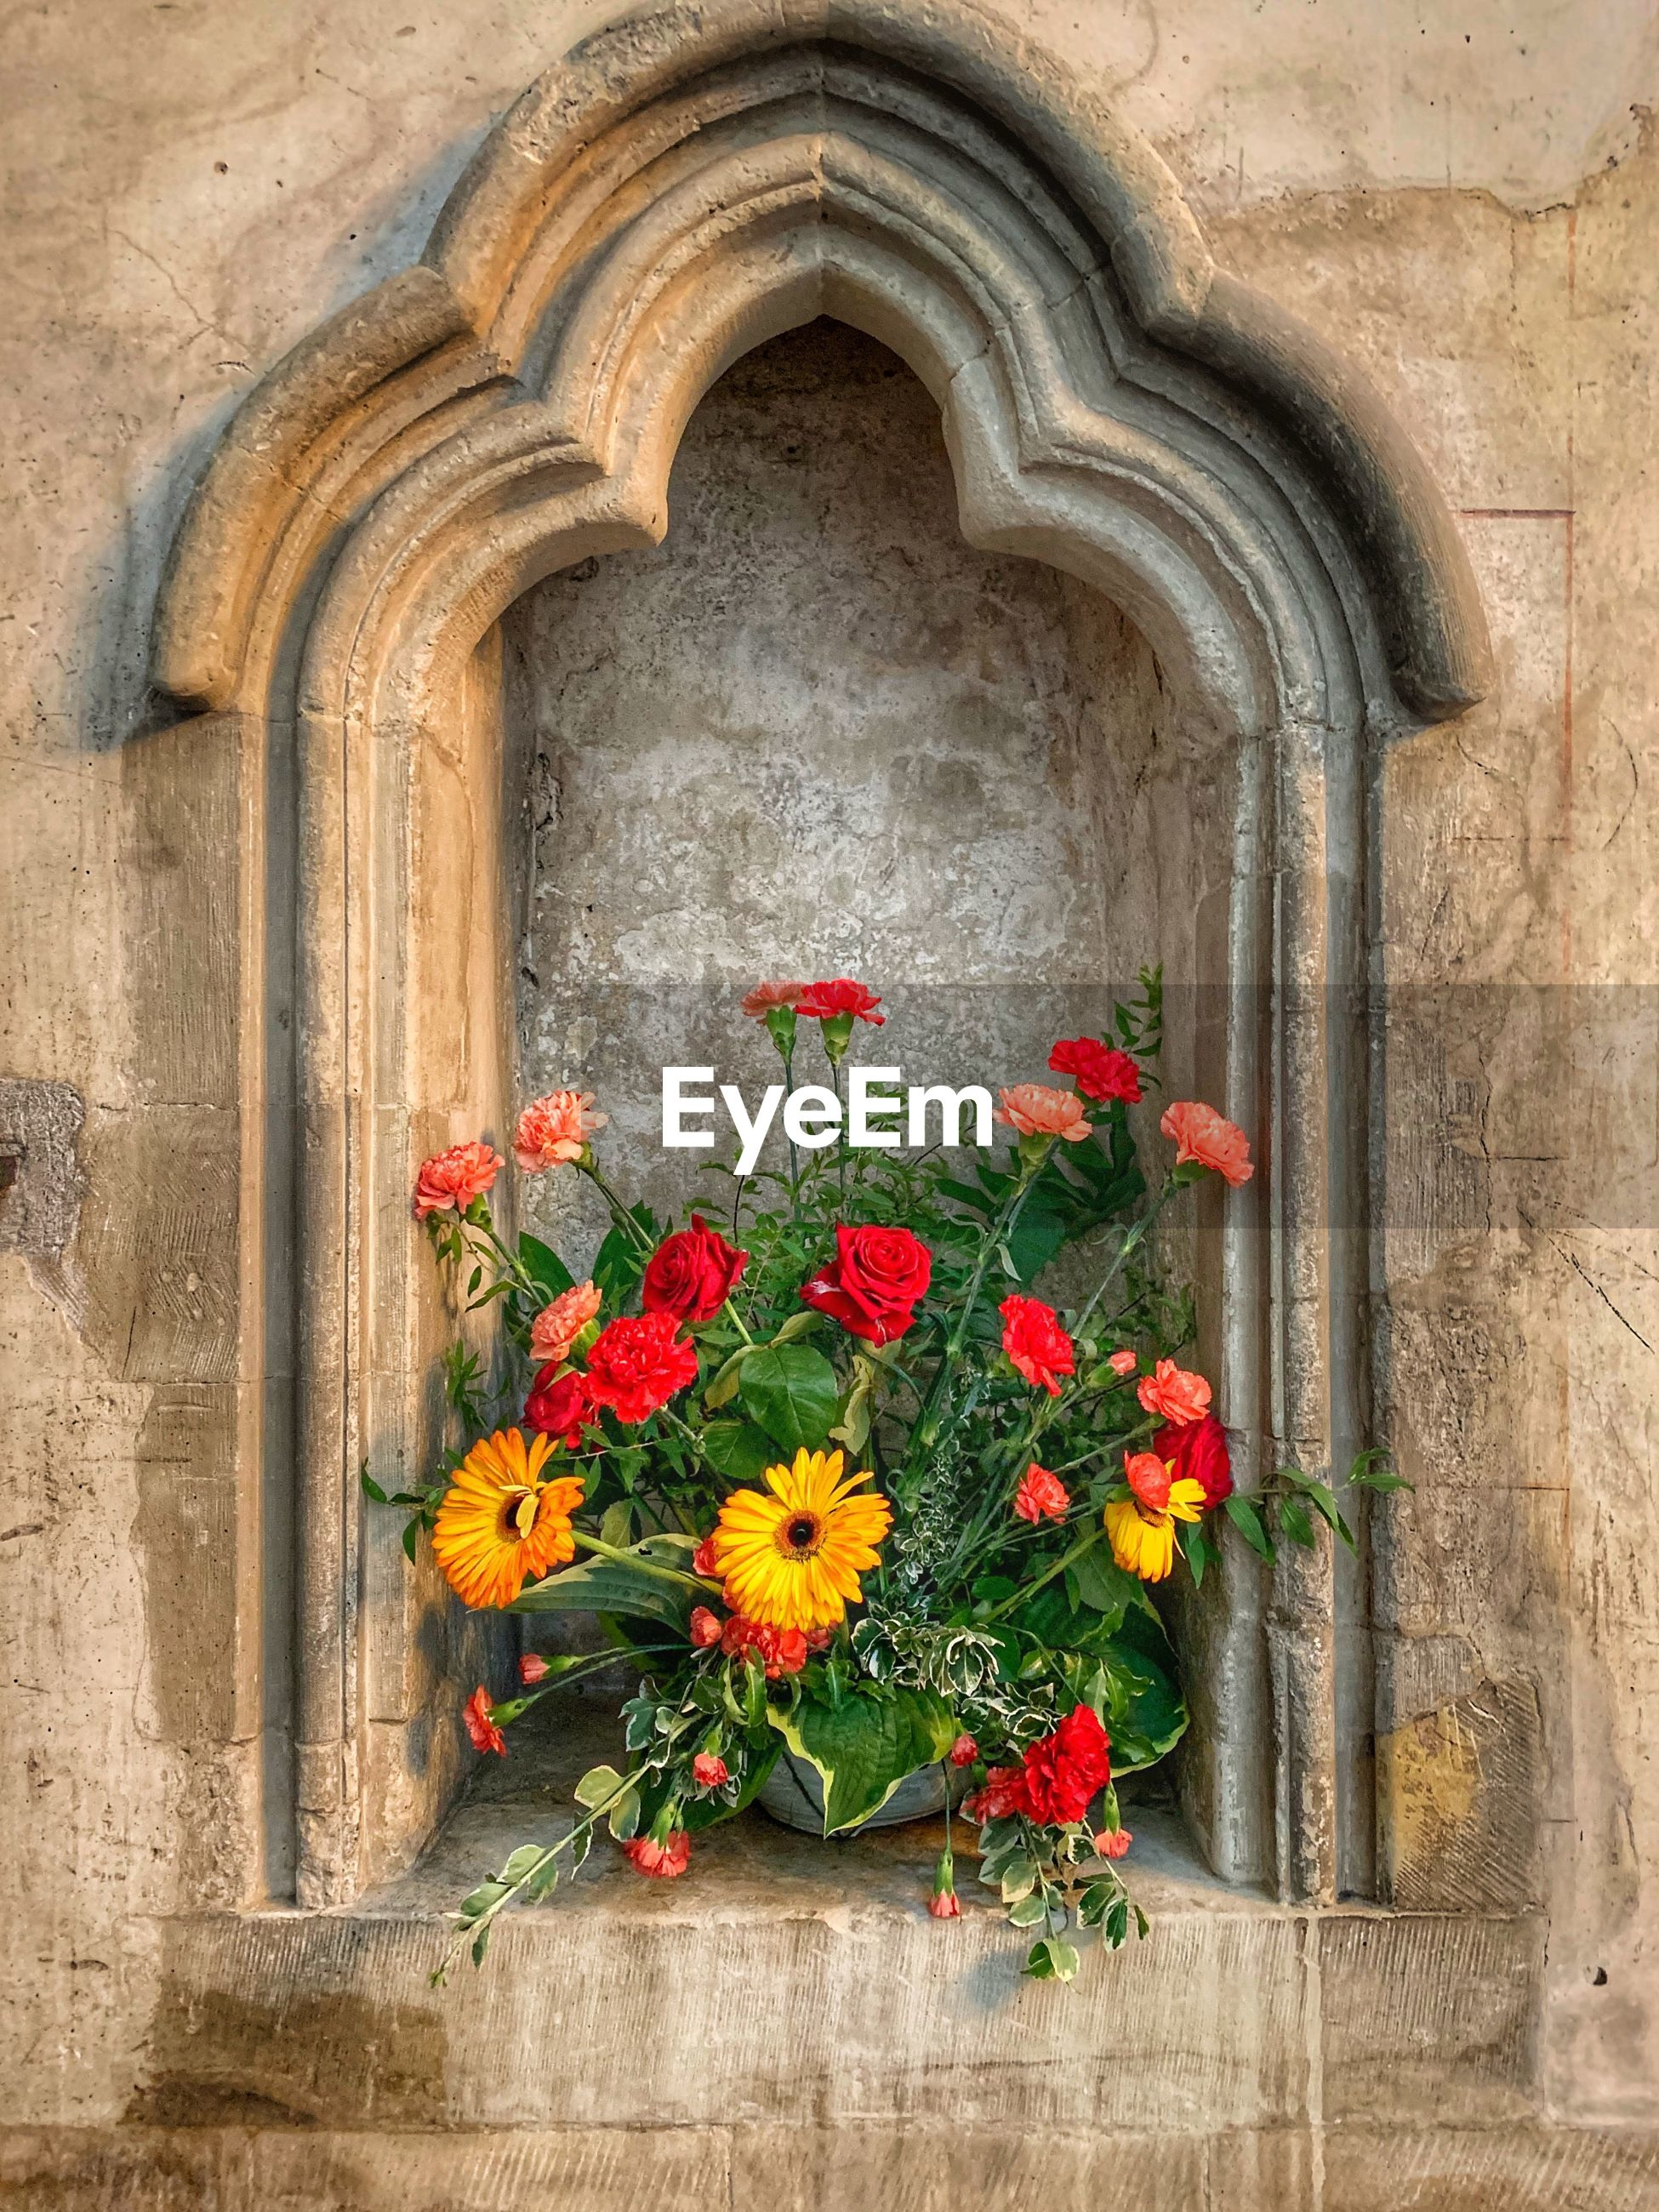 flower, flowering plant, plant, architecture, arch, freshness, fragility, vulnerability, nature, built structure, no people, growth, day, beauty in nature, history, the past, flower head, close-up, petal, outdoors, stone wall